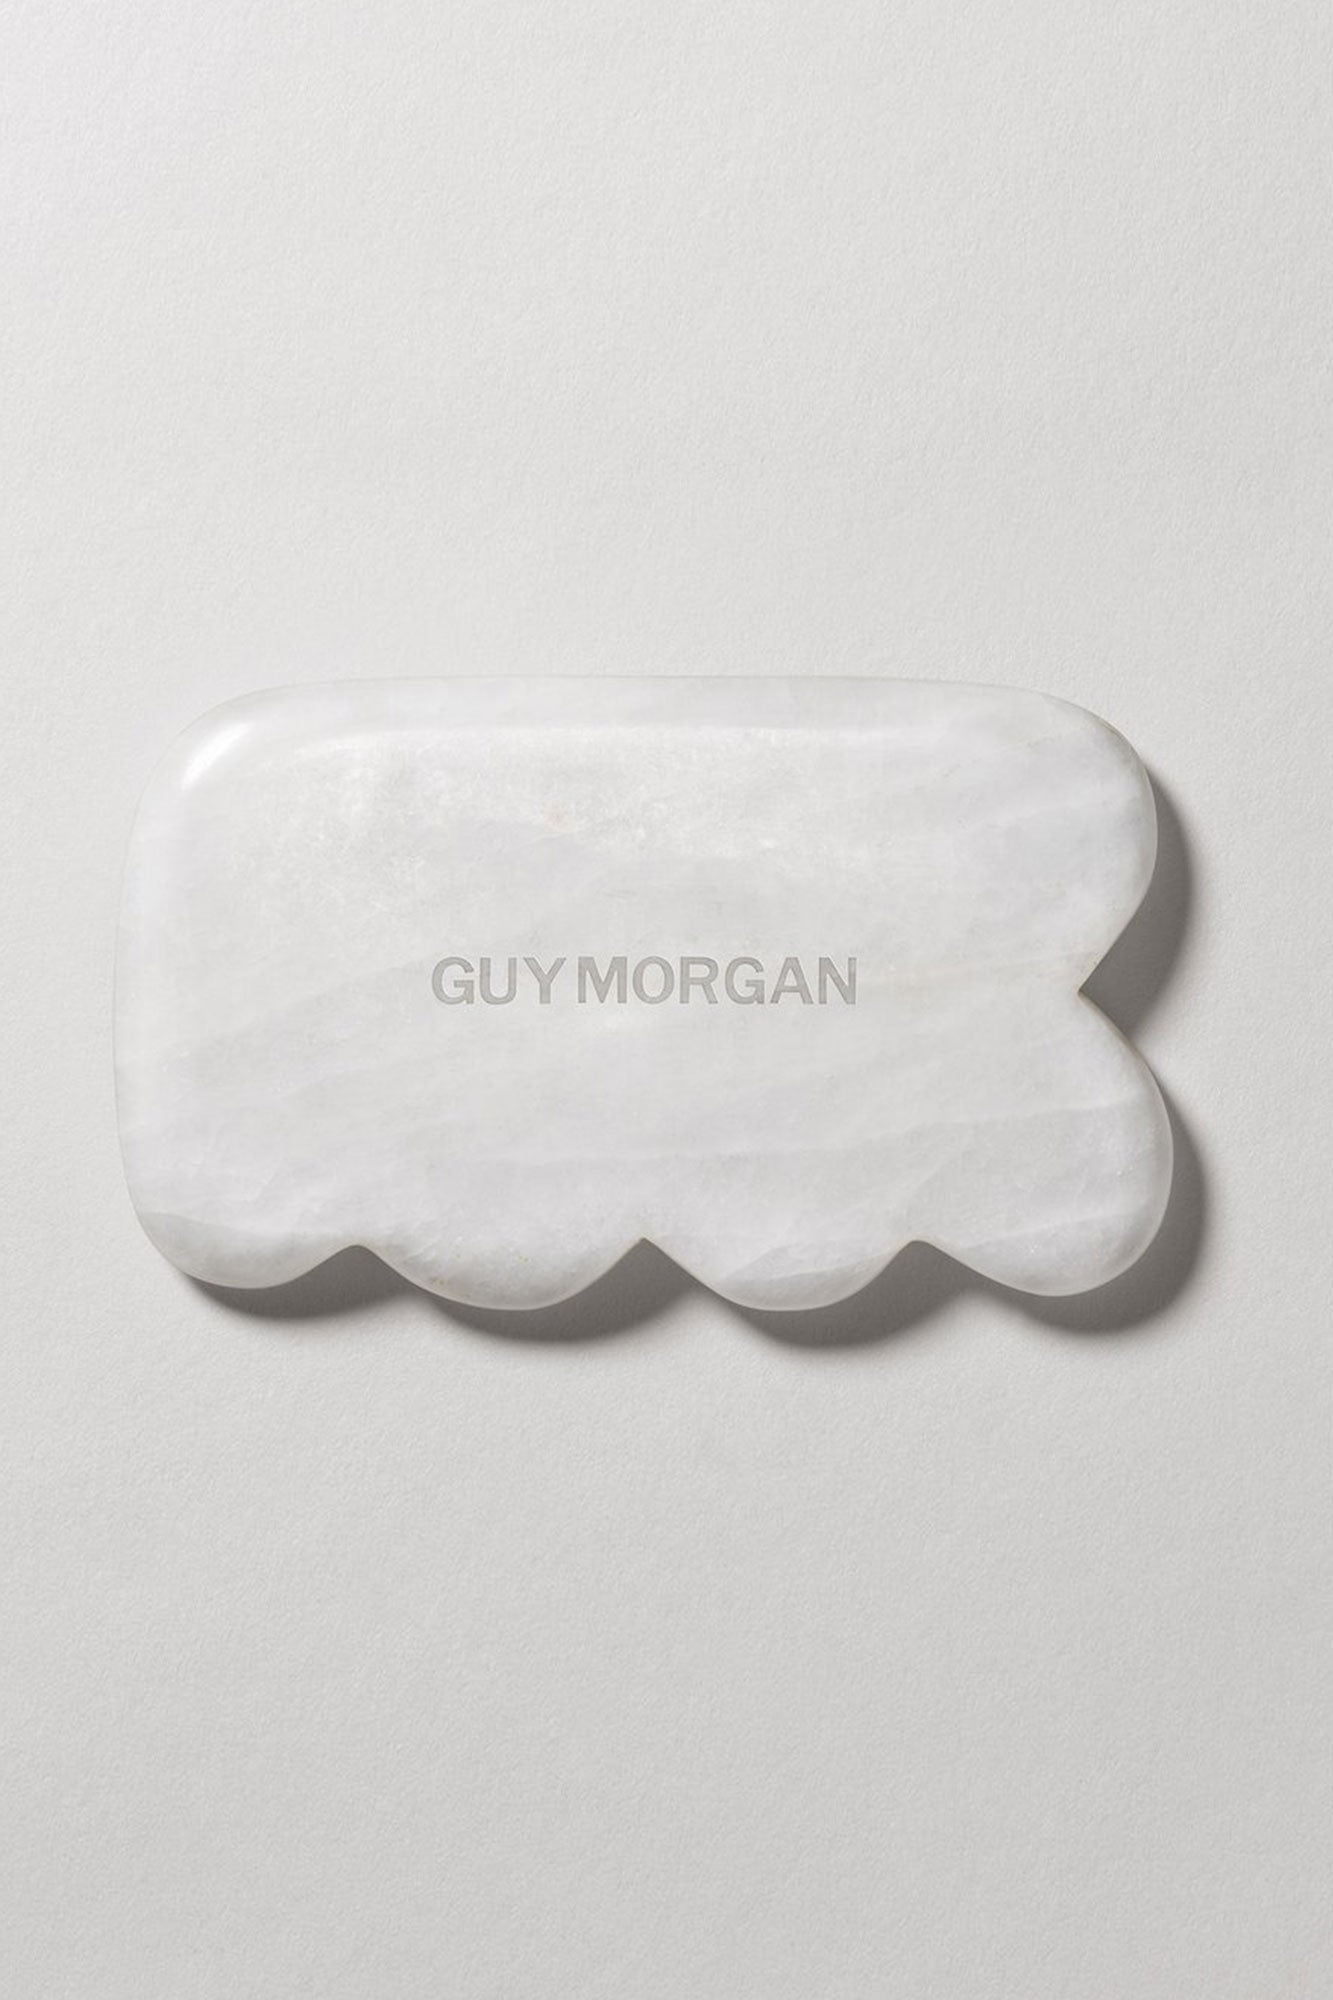 Guy Morgan Gua Sha Stone